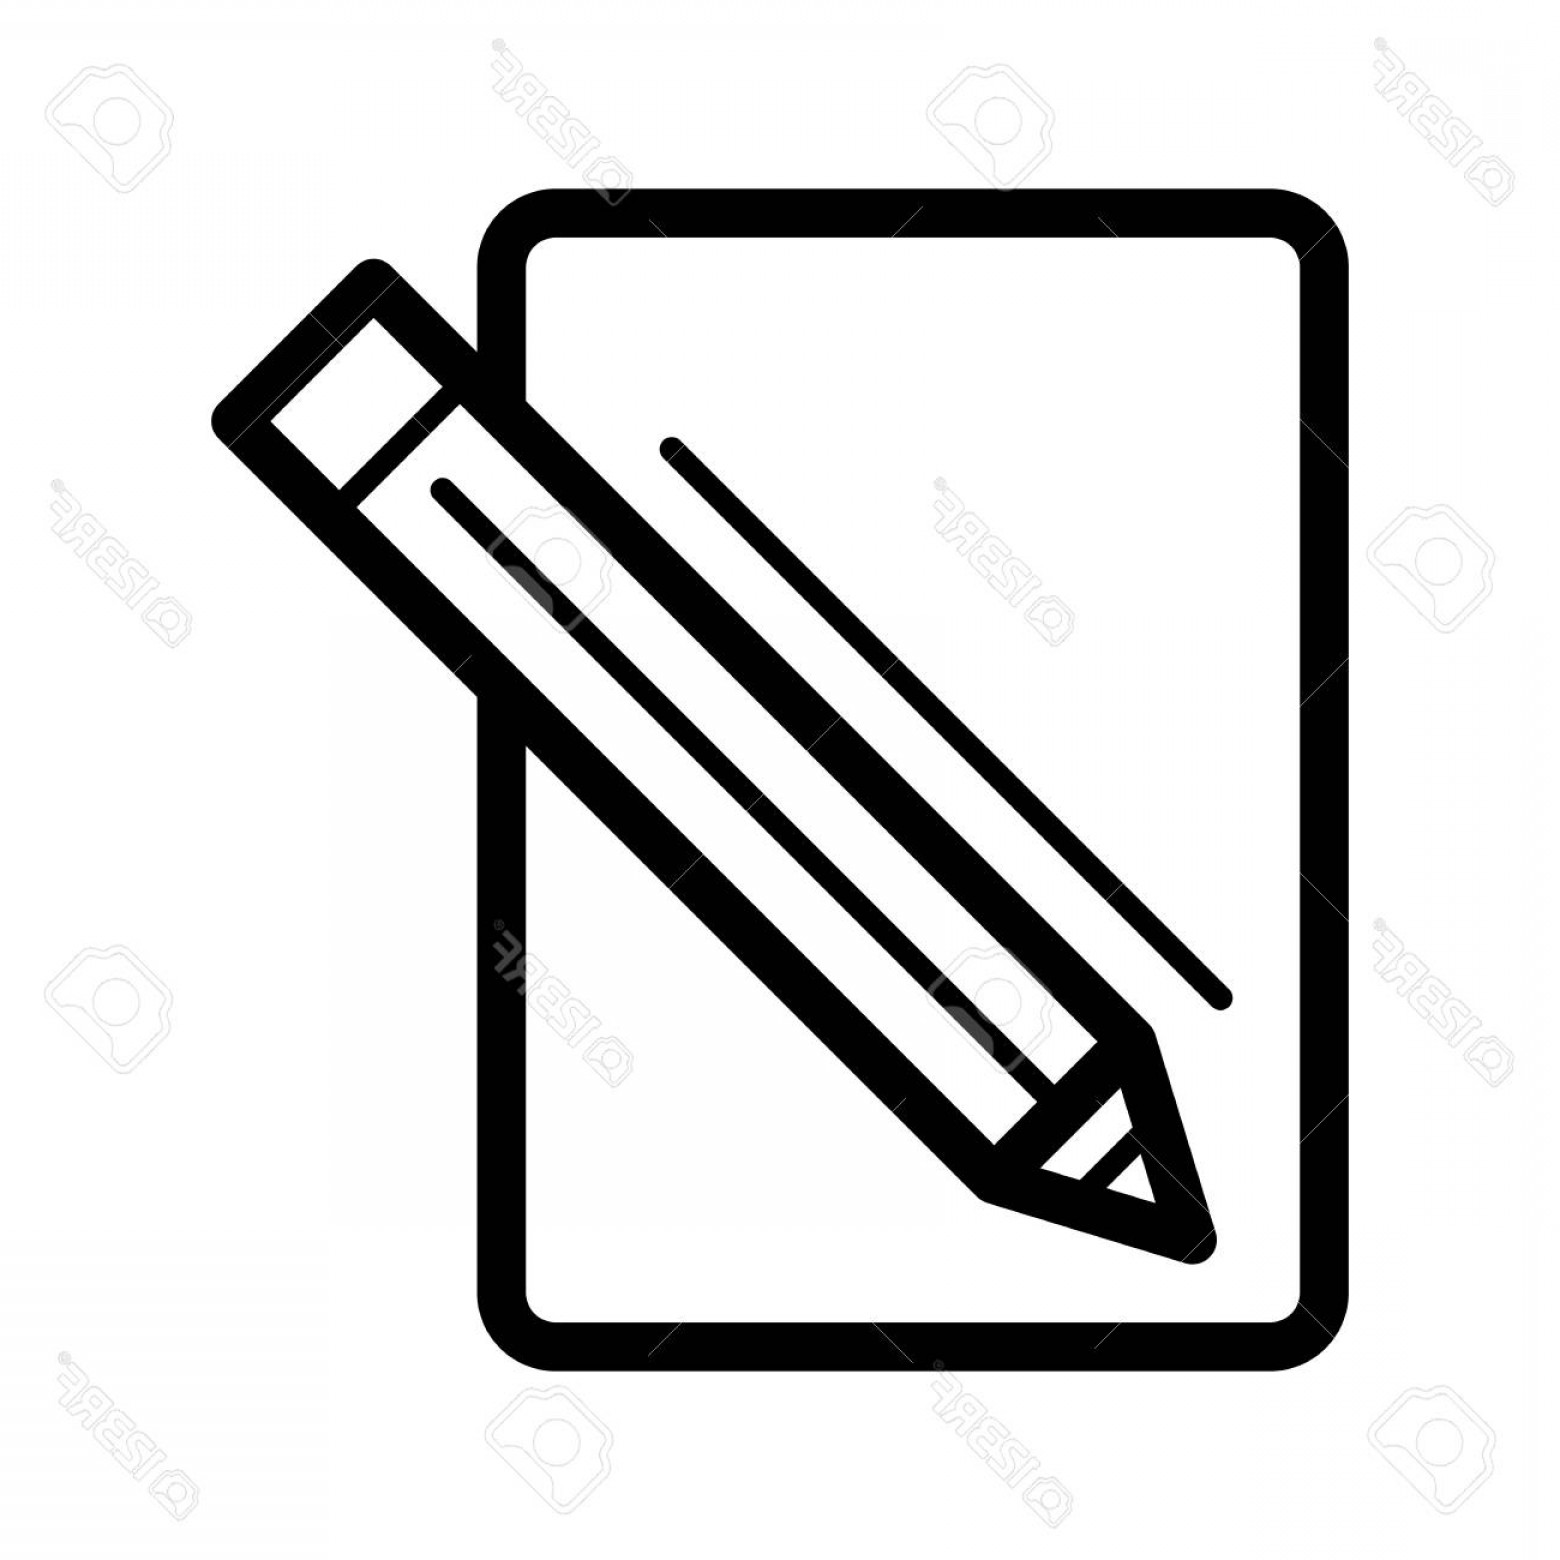 Paper And Pencil Icon Vector: Photostock Vector Blank Paper And A Pencil Vector Icon Black And White Illustration Of Note Pad And Pen Outline Linear